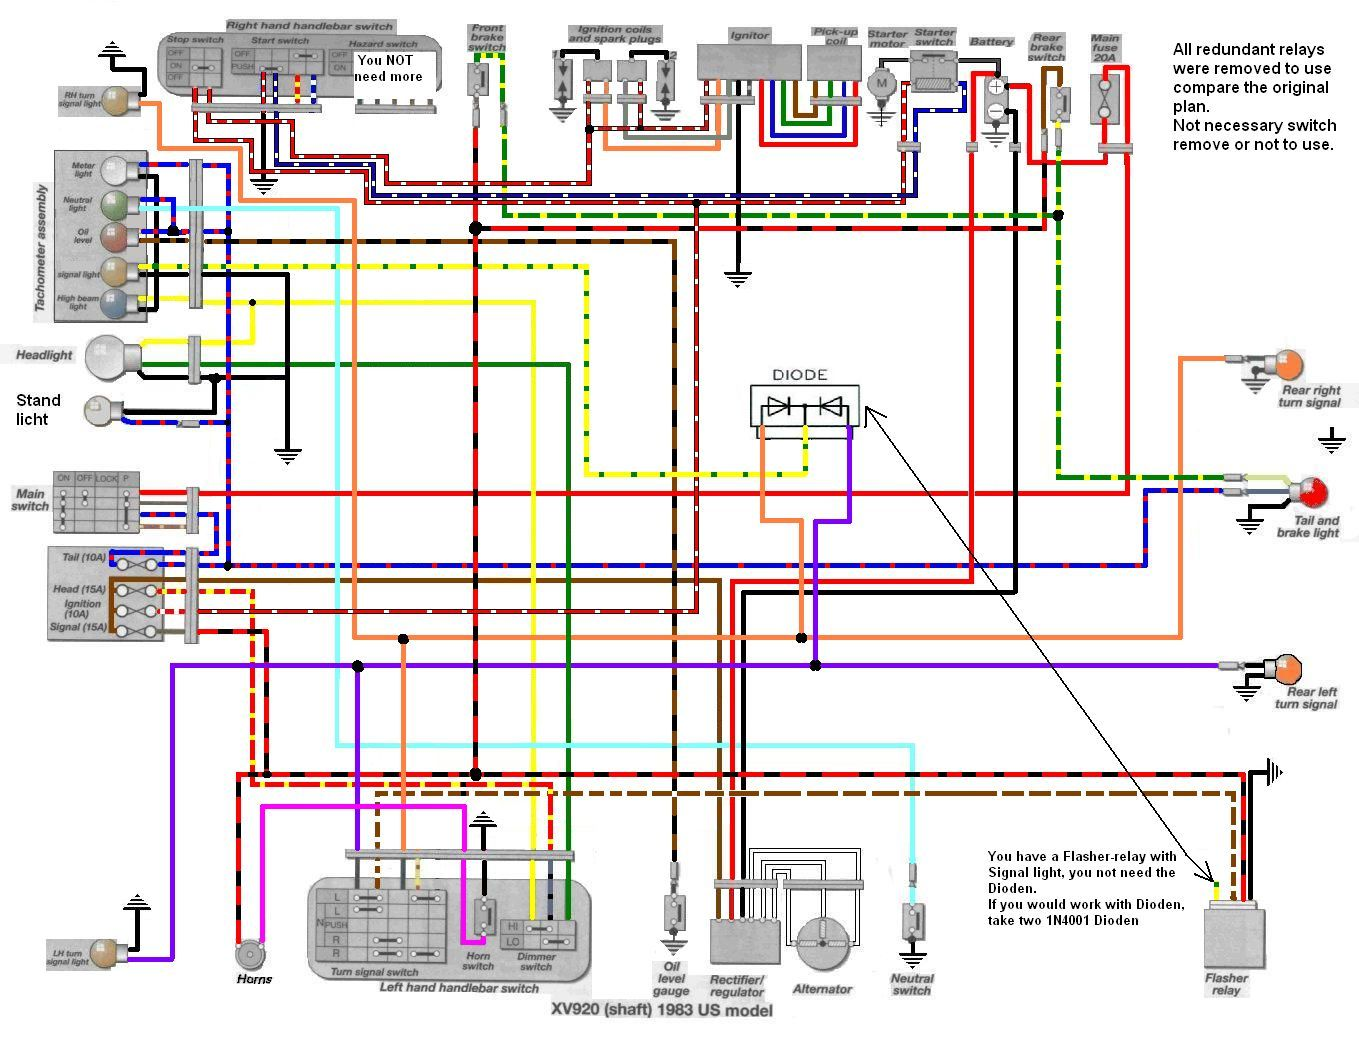 xv1000 wiring diagram wiring schematic diagram Yamaha Ysr50 Wiring Diagram tr1 xv1000 xv920 wiring diagrams manfred\\u0027s tr1 page all about wiring a 400 amp